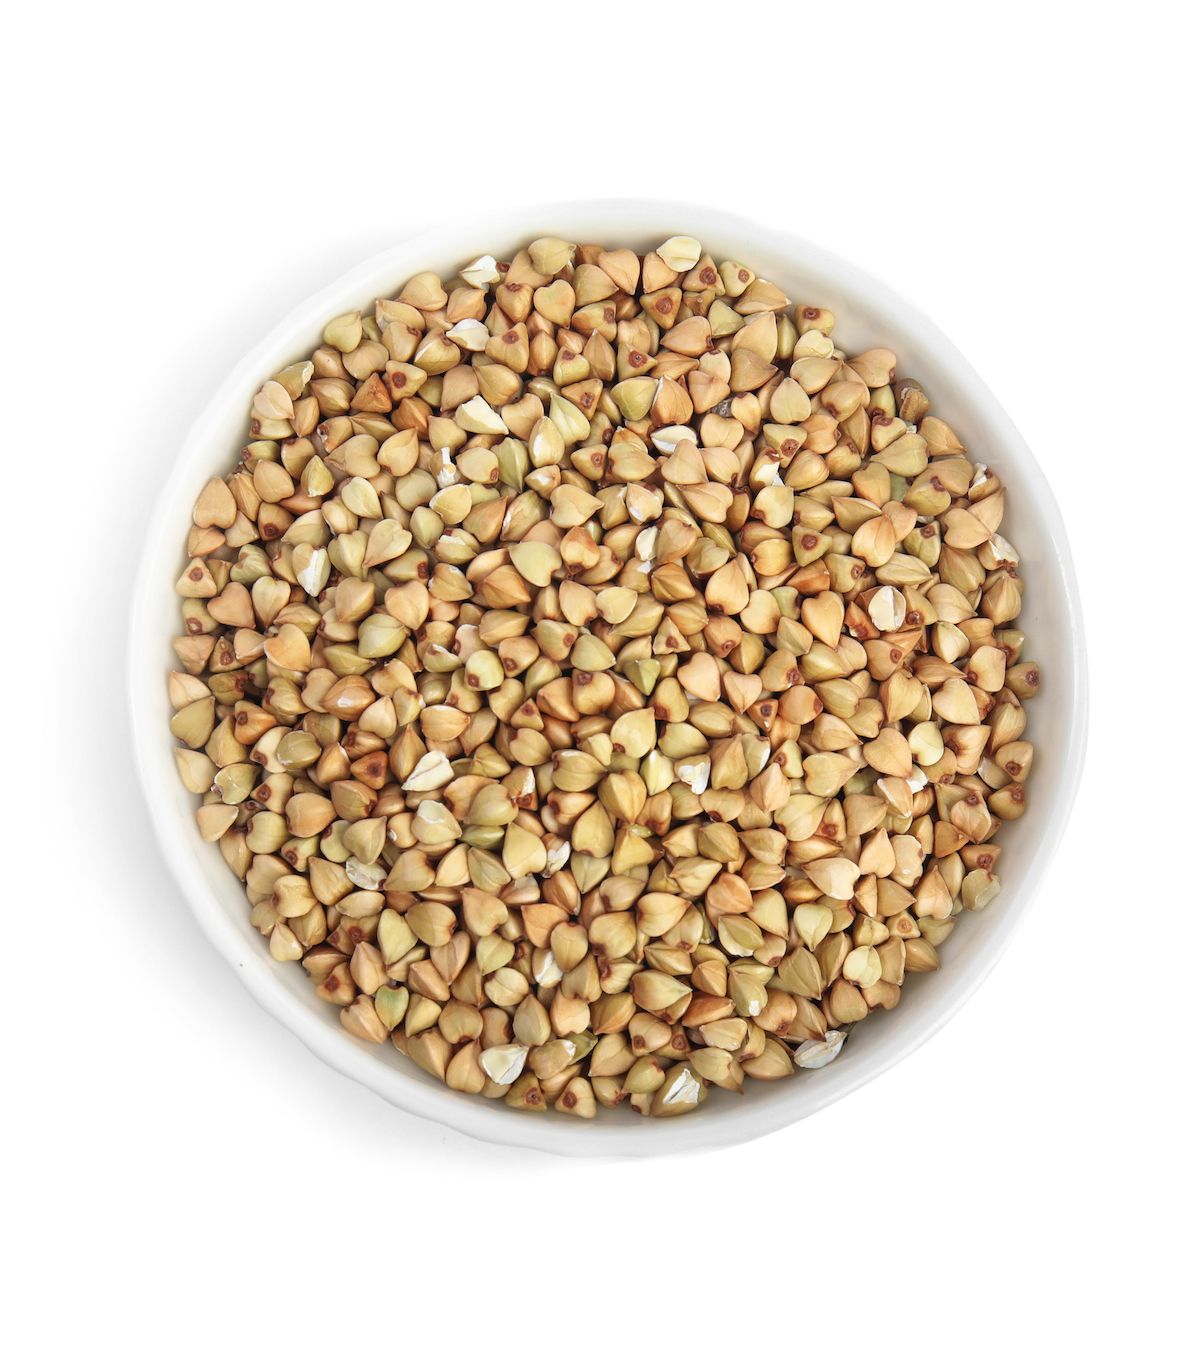 A white bowl full of buckwheat groats on a white background